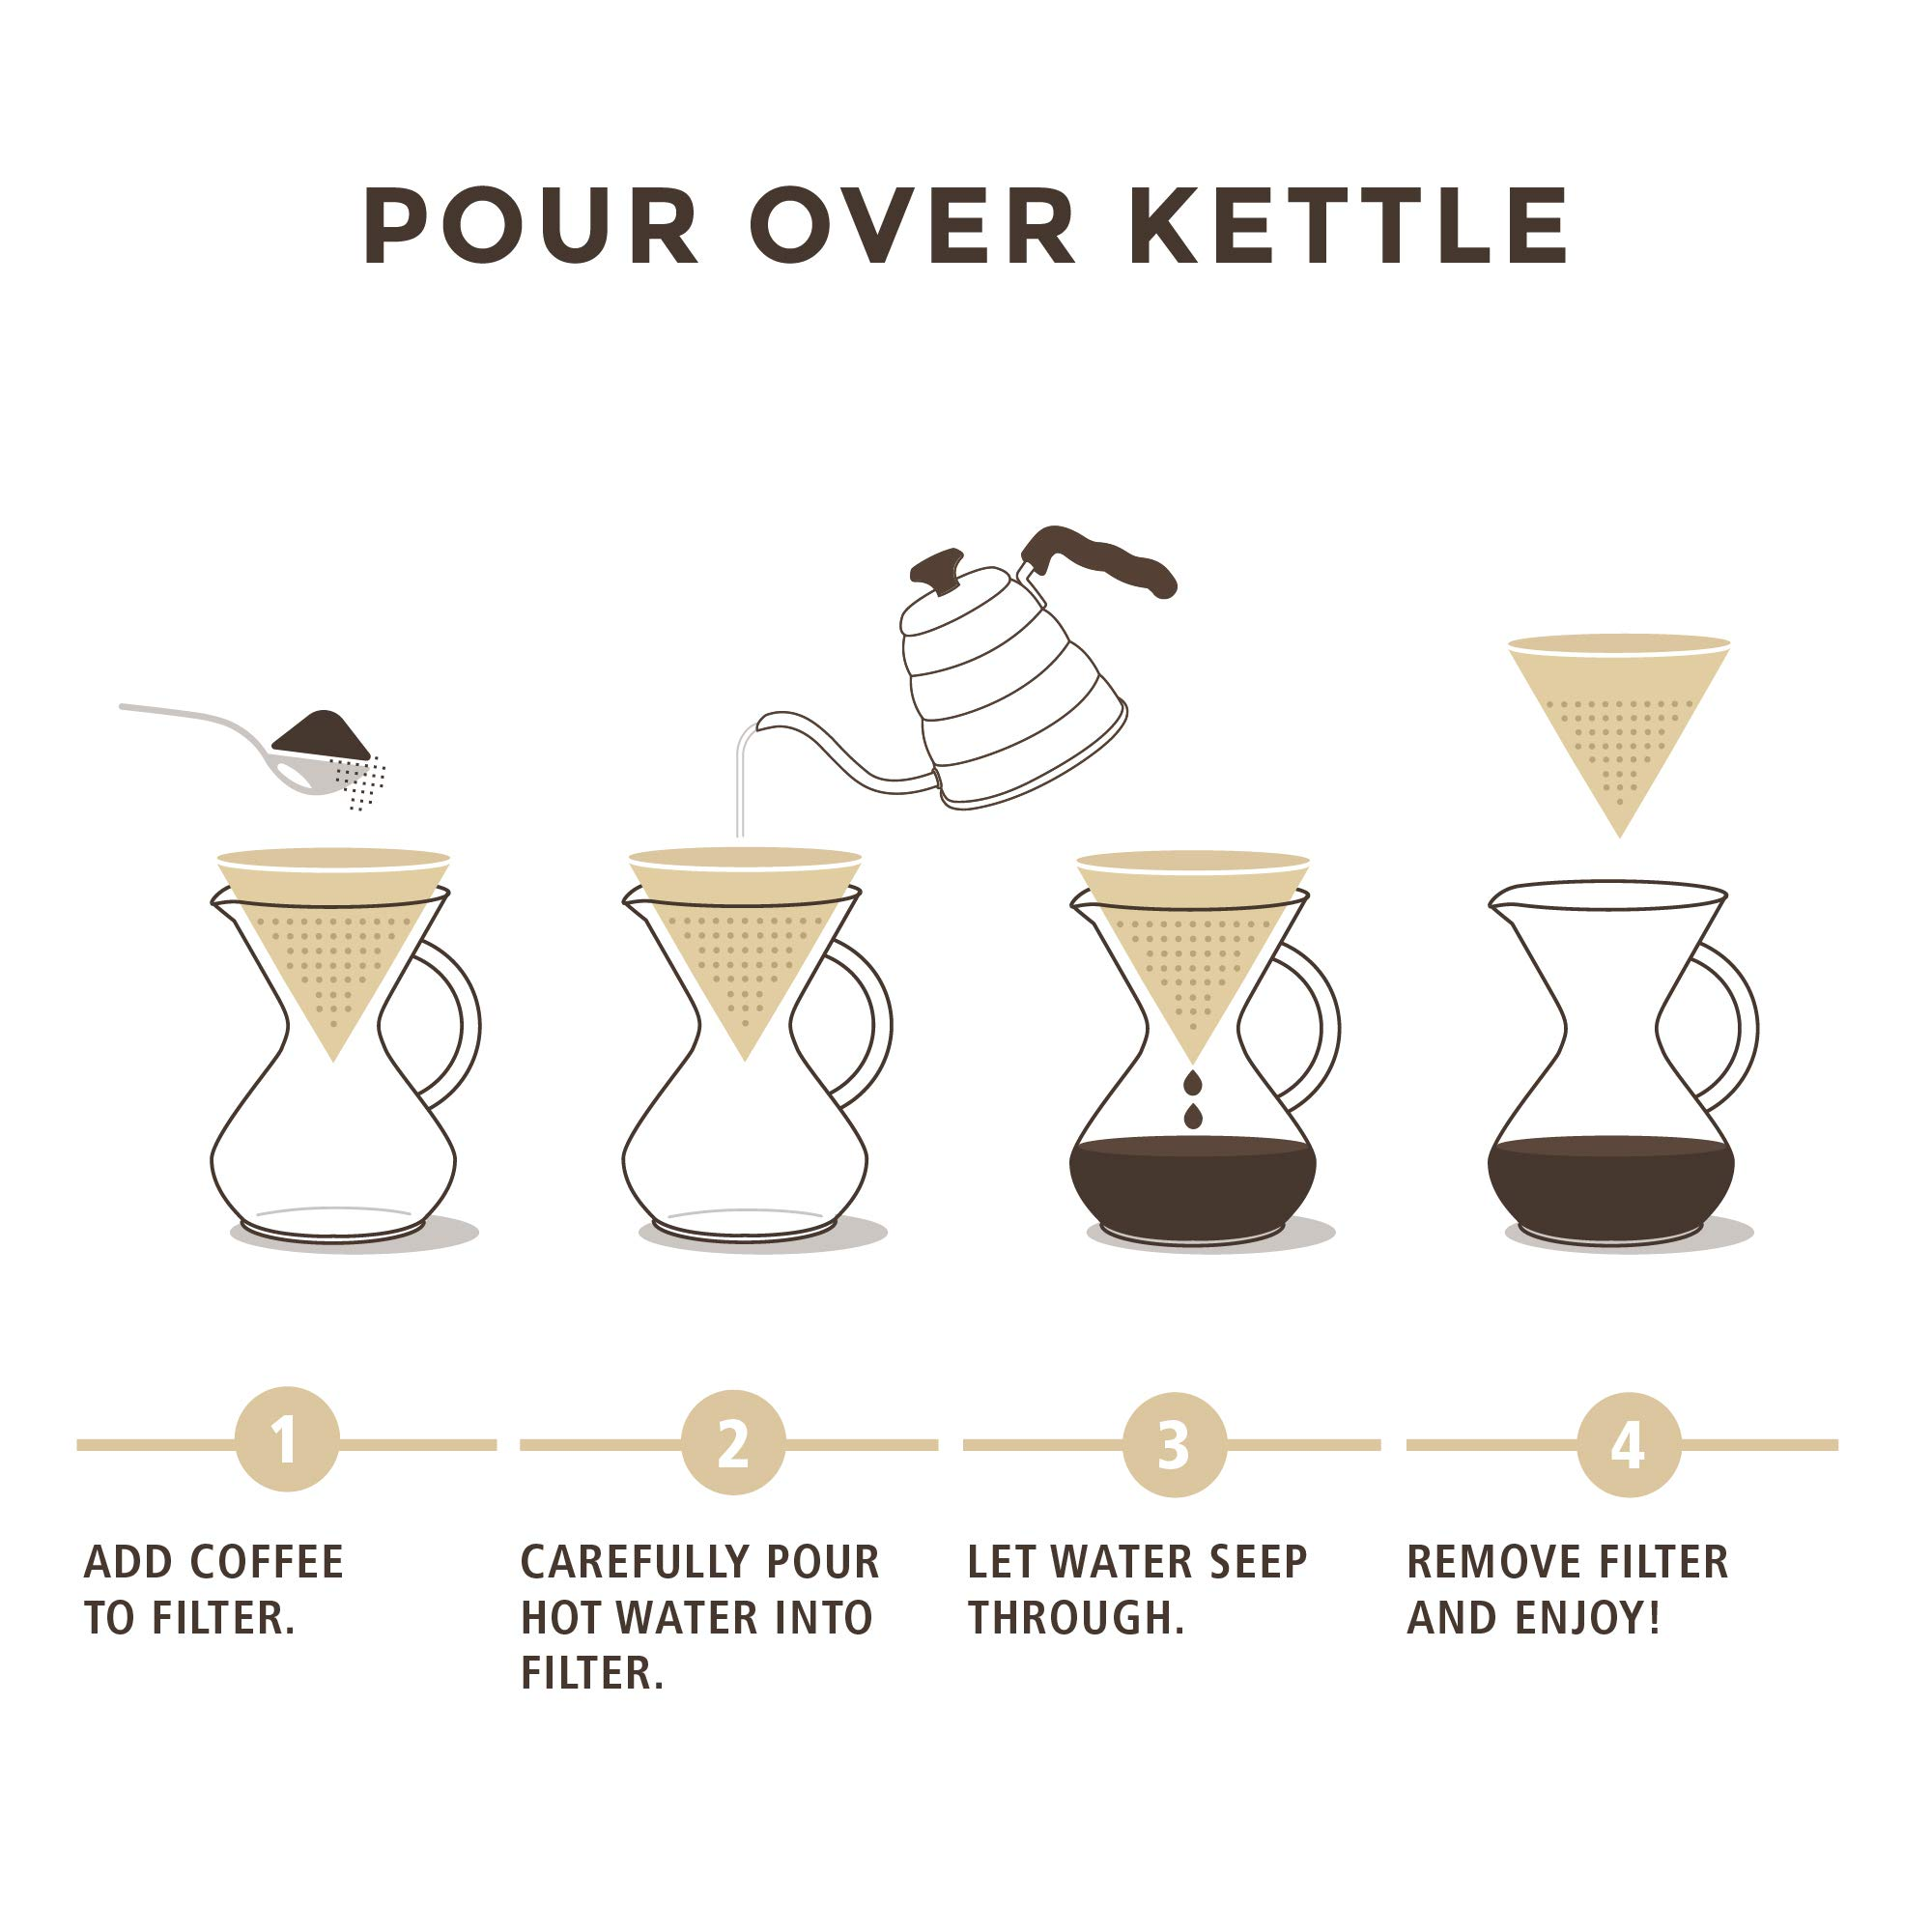 Pour Over Coffee Kettle with Outstanding Thermometer (40floz) - Gooseneck Kettle - Triple Layer Stainless Steel Bottom Works on any Heat Source for Drip Coffee and Tea by Primica (Image #7)